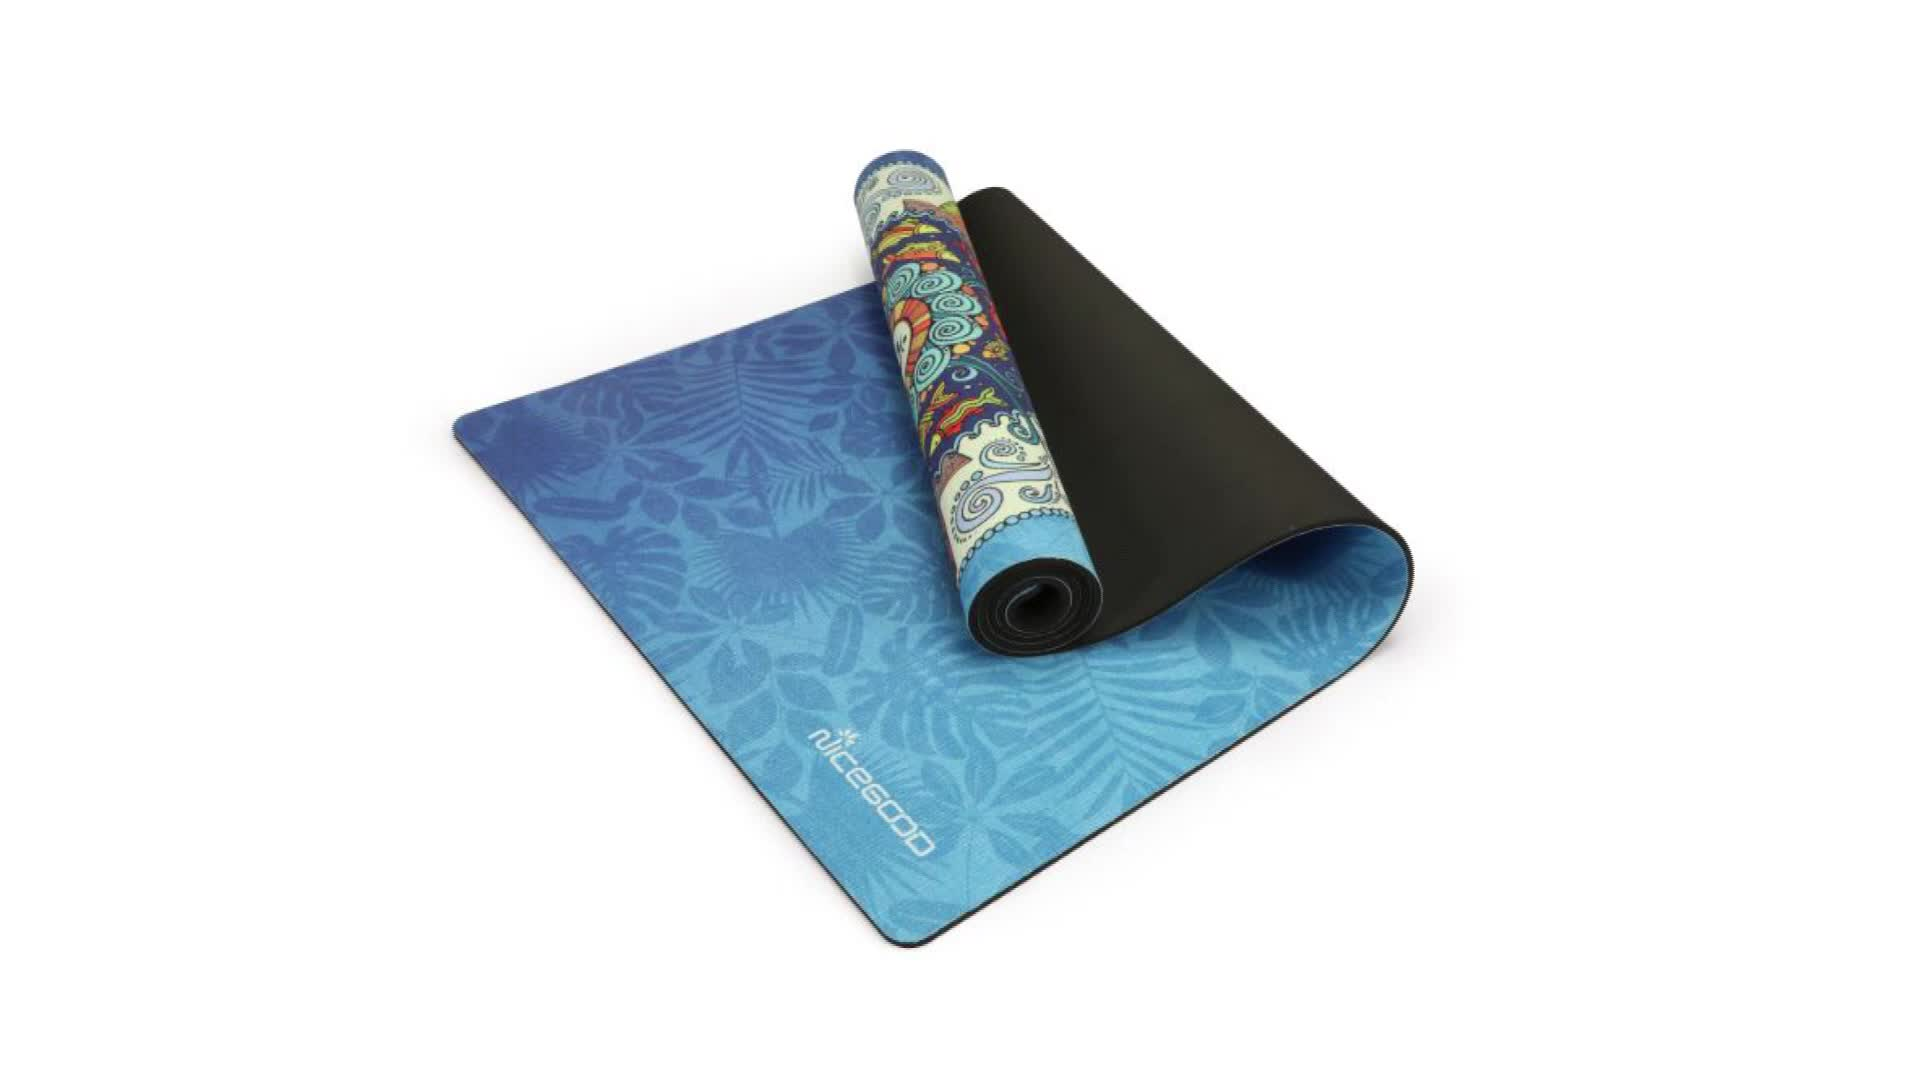 Wholesale custom design yoga mat eco friendly yoga pad suede microfiber